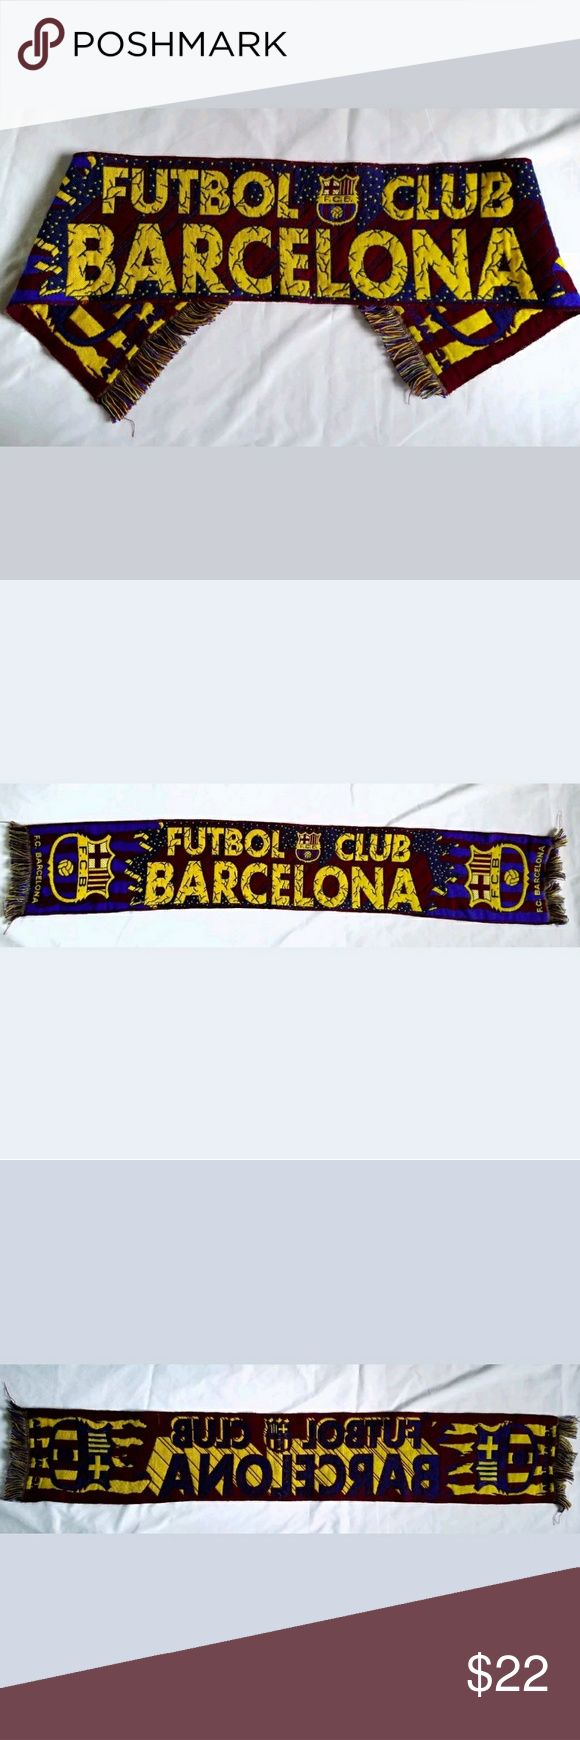 """Barcelona Futbol Club soccer scarf Barcelona Futbol Club unisex scarf available:  No rips, stains, or tears Measures 51 inches long (from each tip of the tassels) 8 Inches wide Says """"Futbol Club Barcelona"""" on the front with FCB shields on each end  Comes from a smoke-free home! Accessories Scarves"""